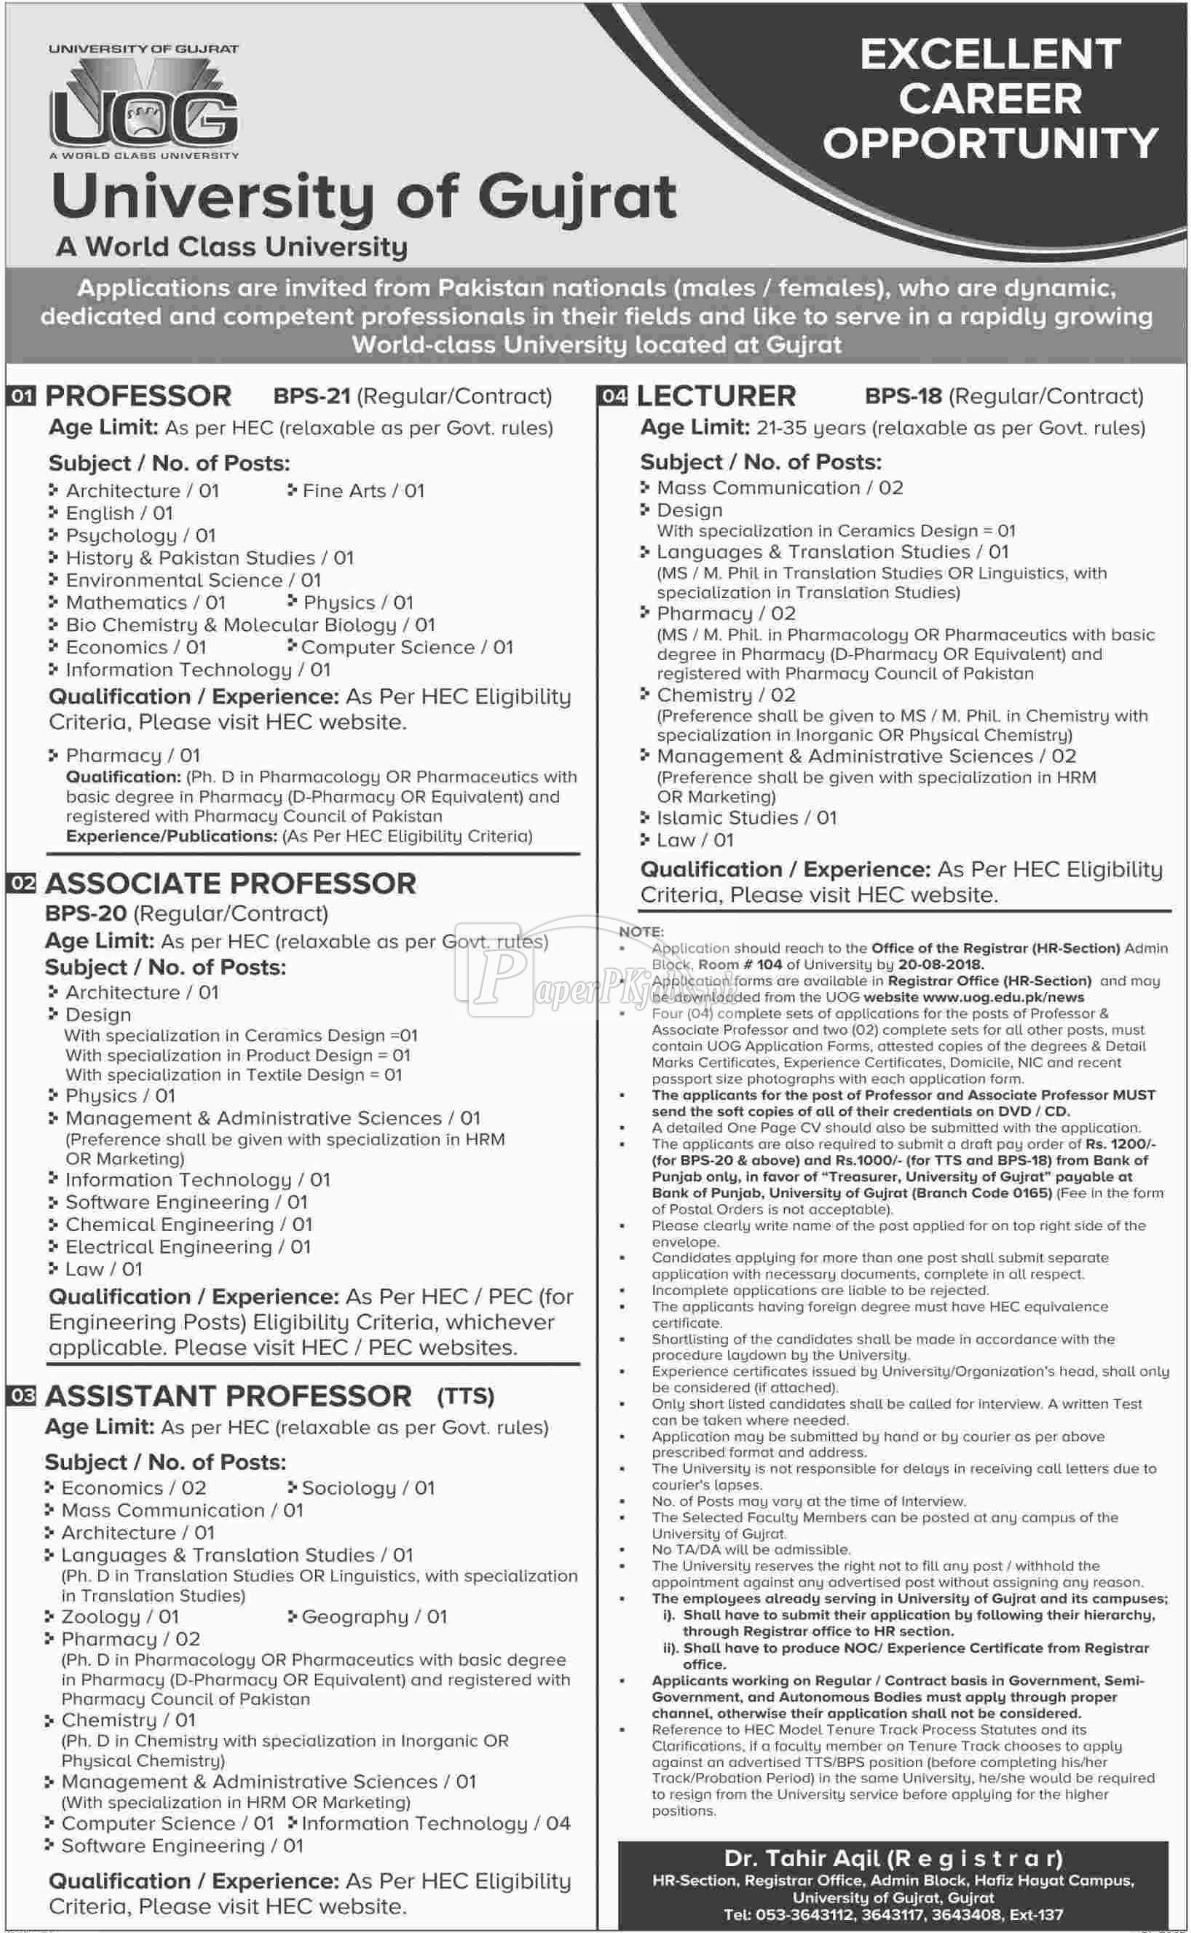 University of Gujrat Jobs 2018